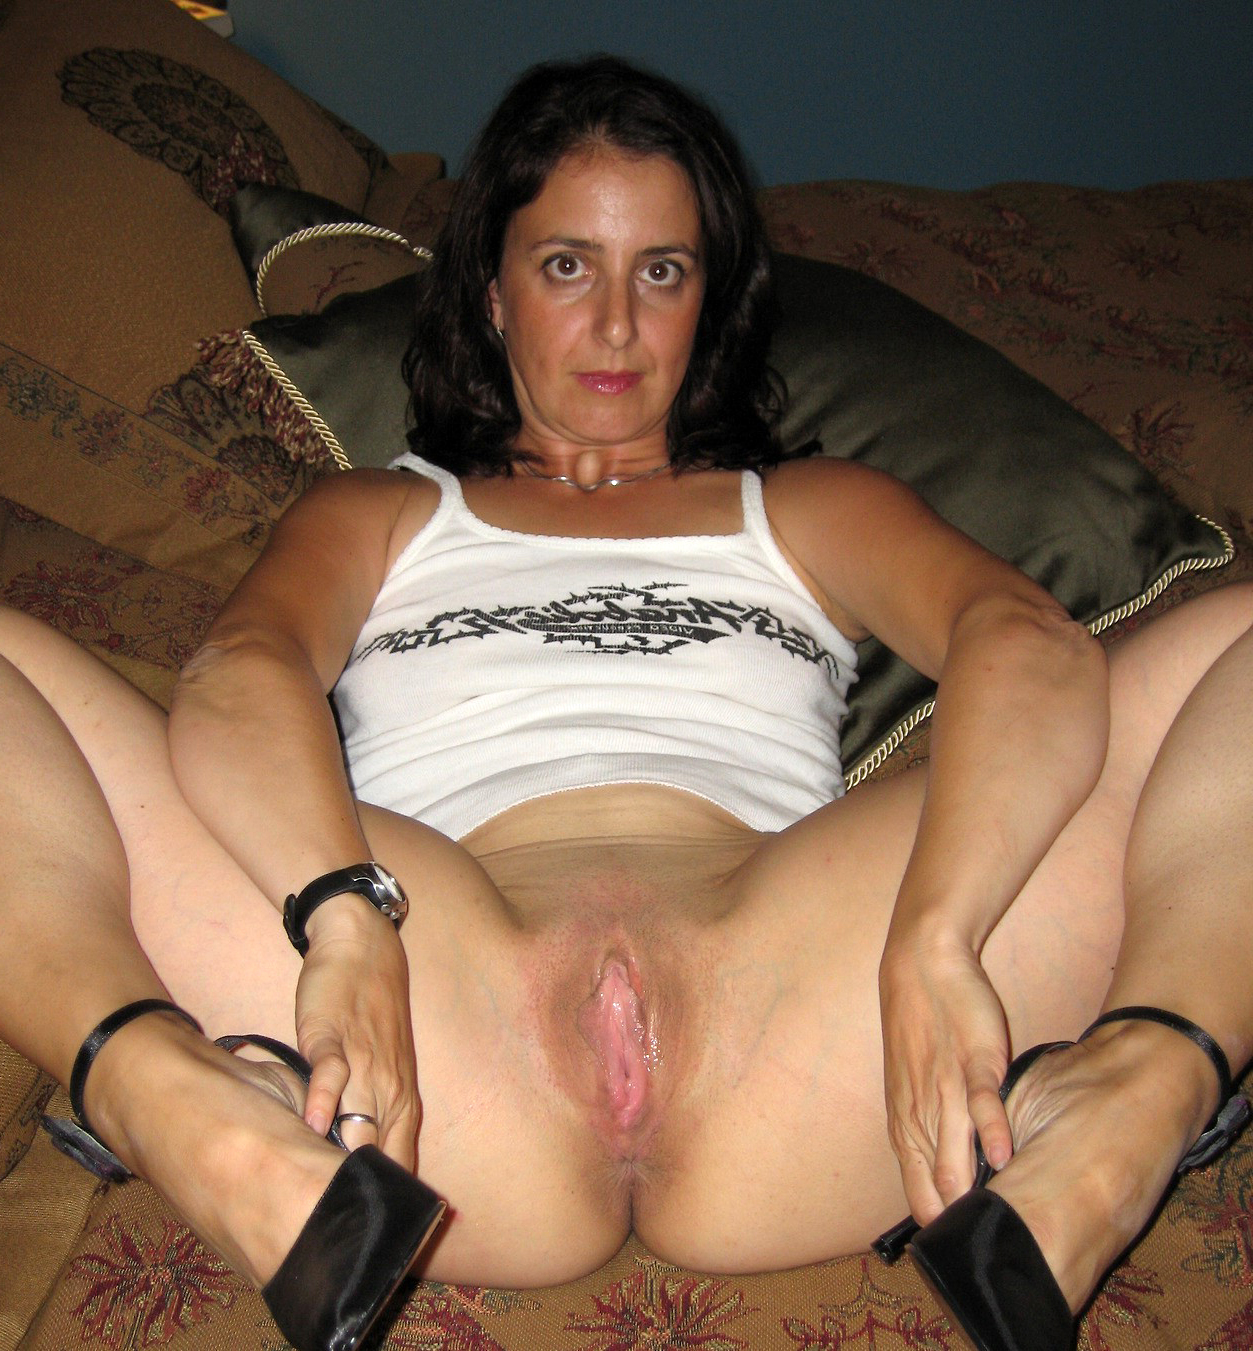 Homemade amateur 40+ wife pictures